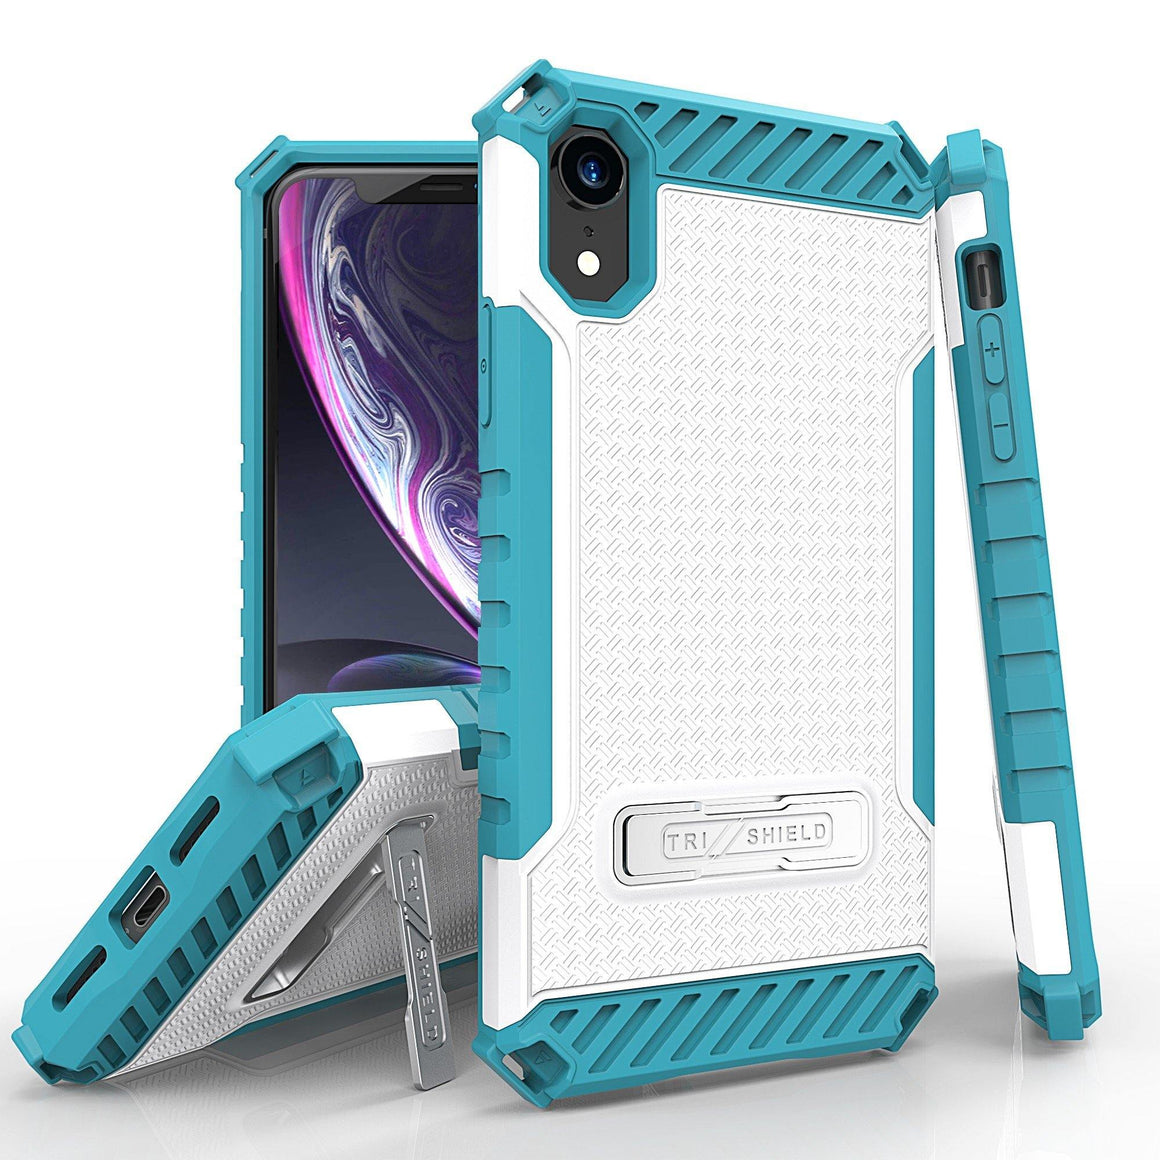 "Tri Shield For Apple iPhone XR (6.1"") White/Light Blue, TPU Case,Kickstand,"